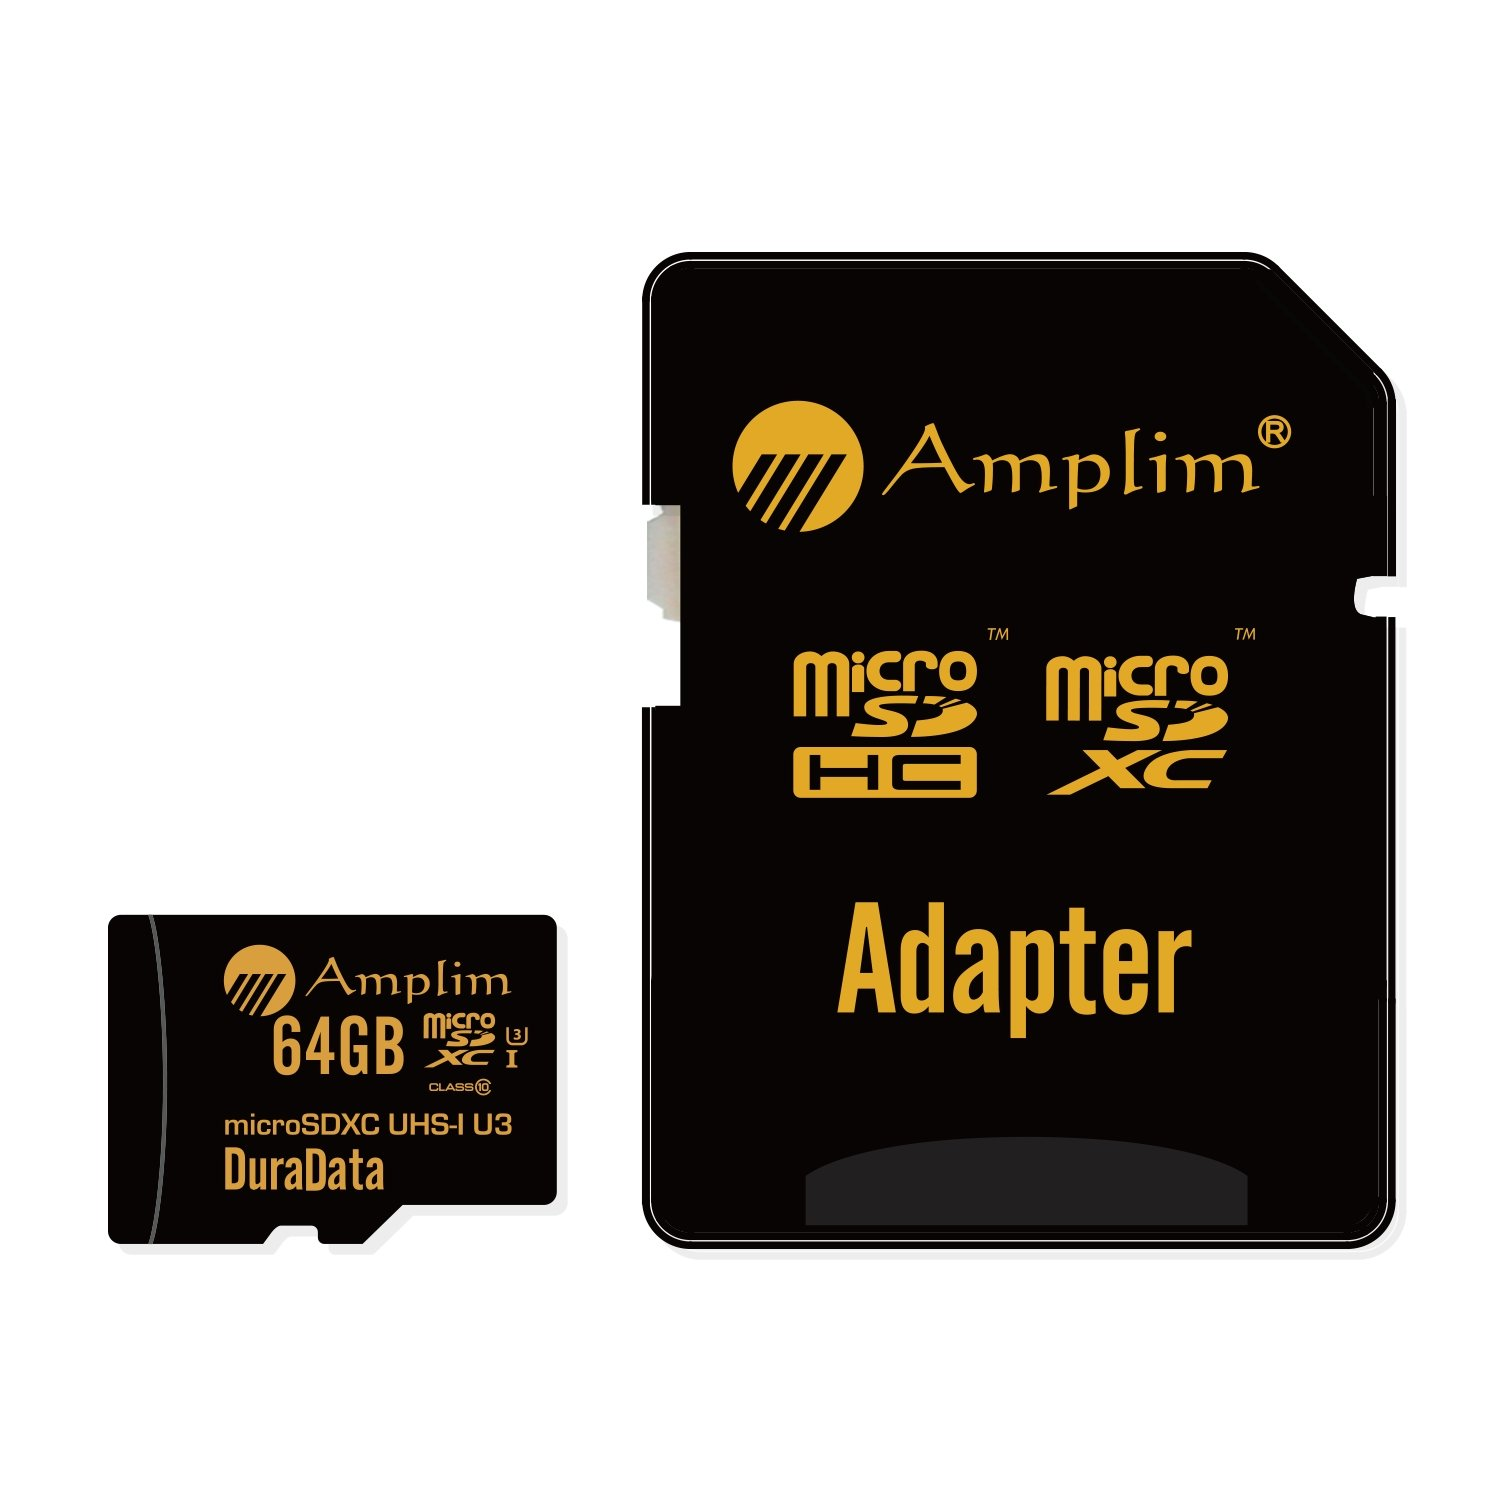 Amplim 64GB Micro SD SDXC V30 A1 Memory Card Plus Adapter Pack (Class 10 U3 UHS-I MicroSD XC Extreme Pro) 64 GB Ultra High Speed 667X 100MB/s UHS-1 TF MicroSDXC 4K Flash - Cell Phone, Drone, Camera by Amplim (Image #4)